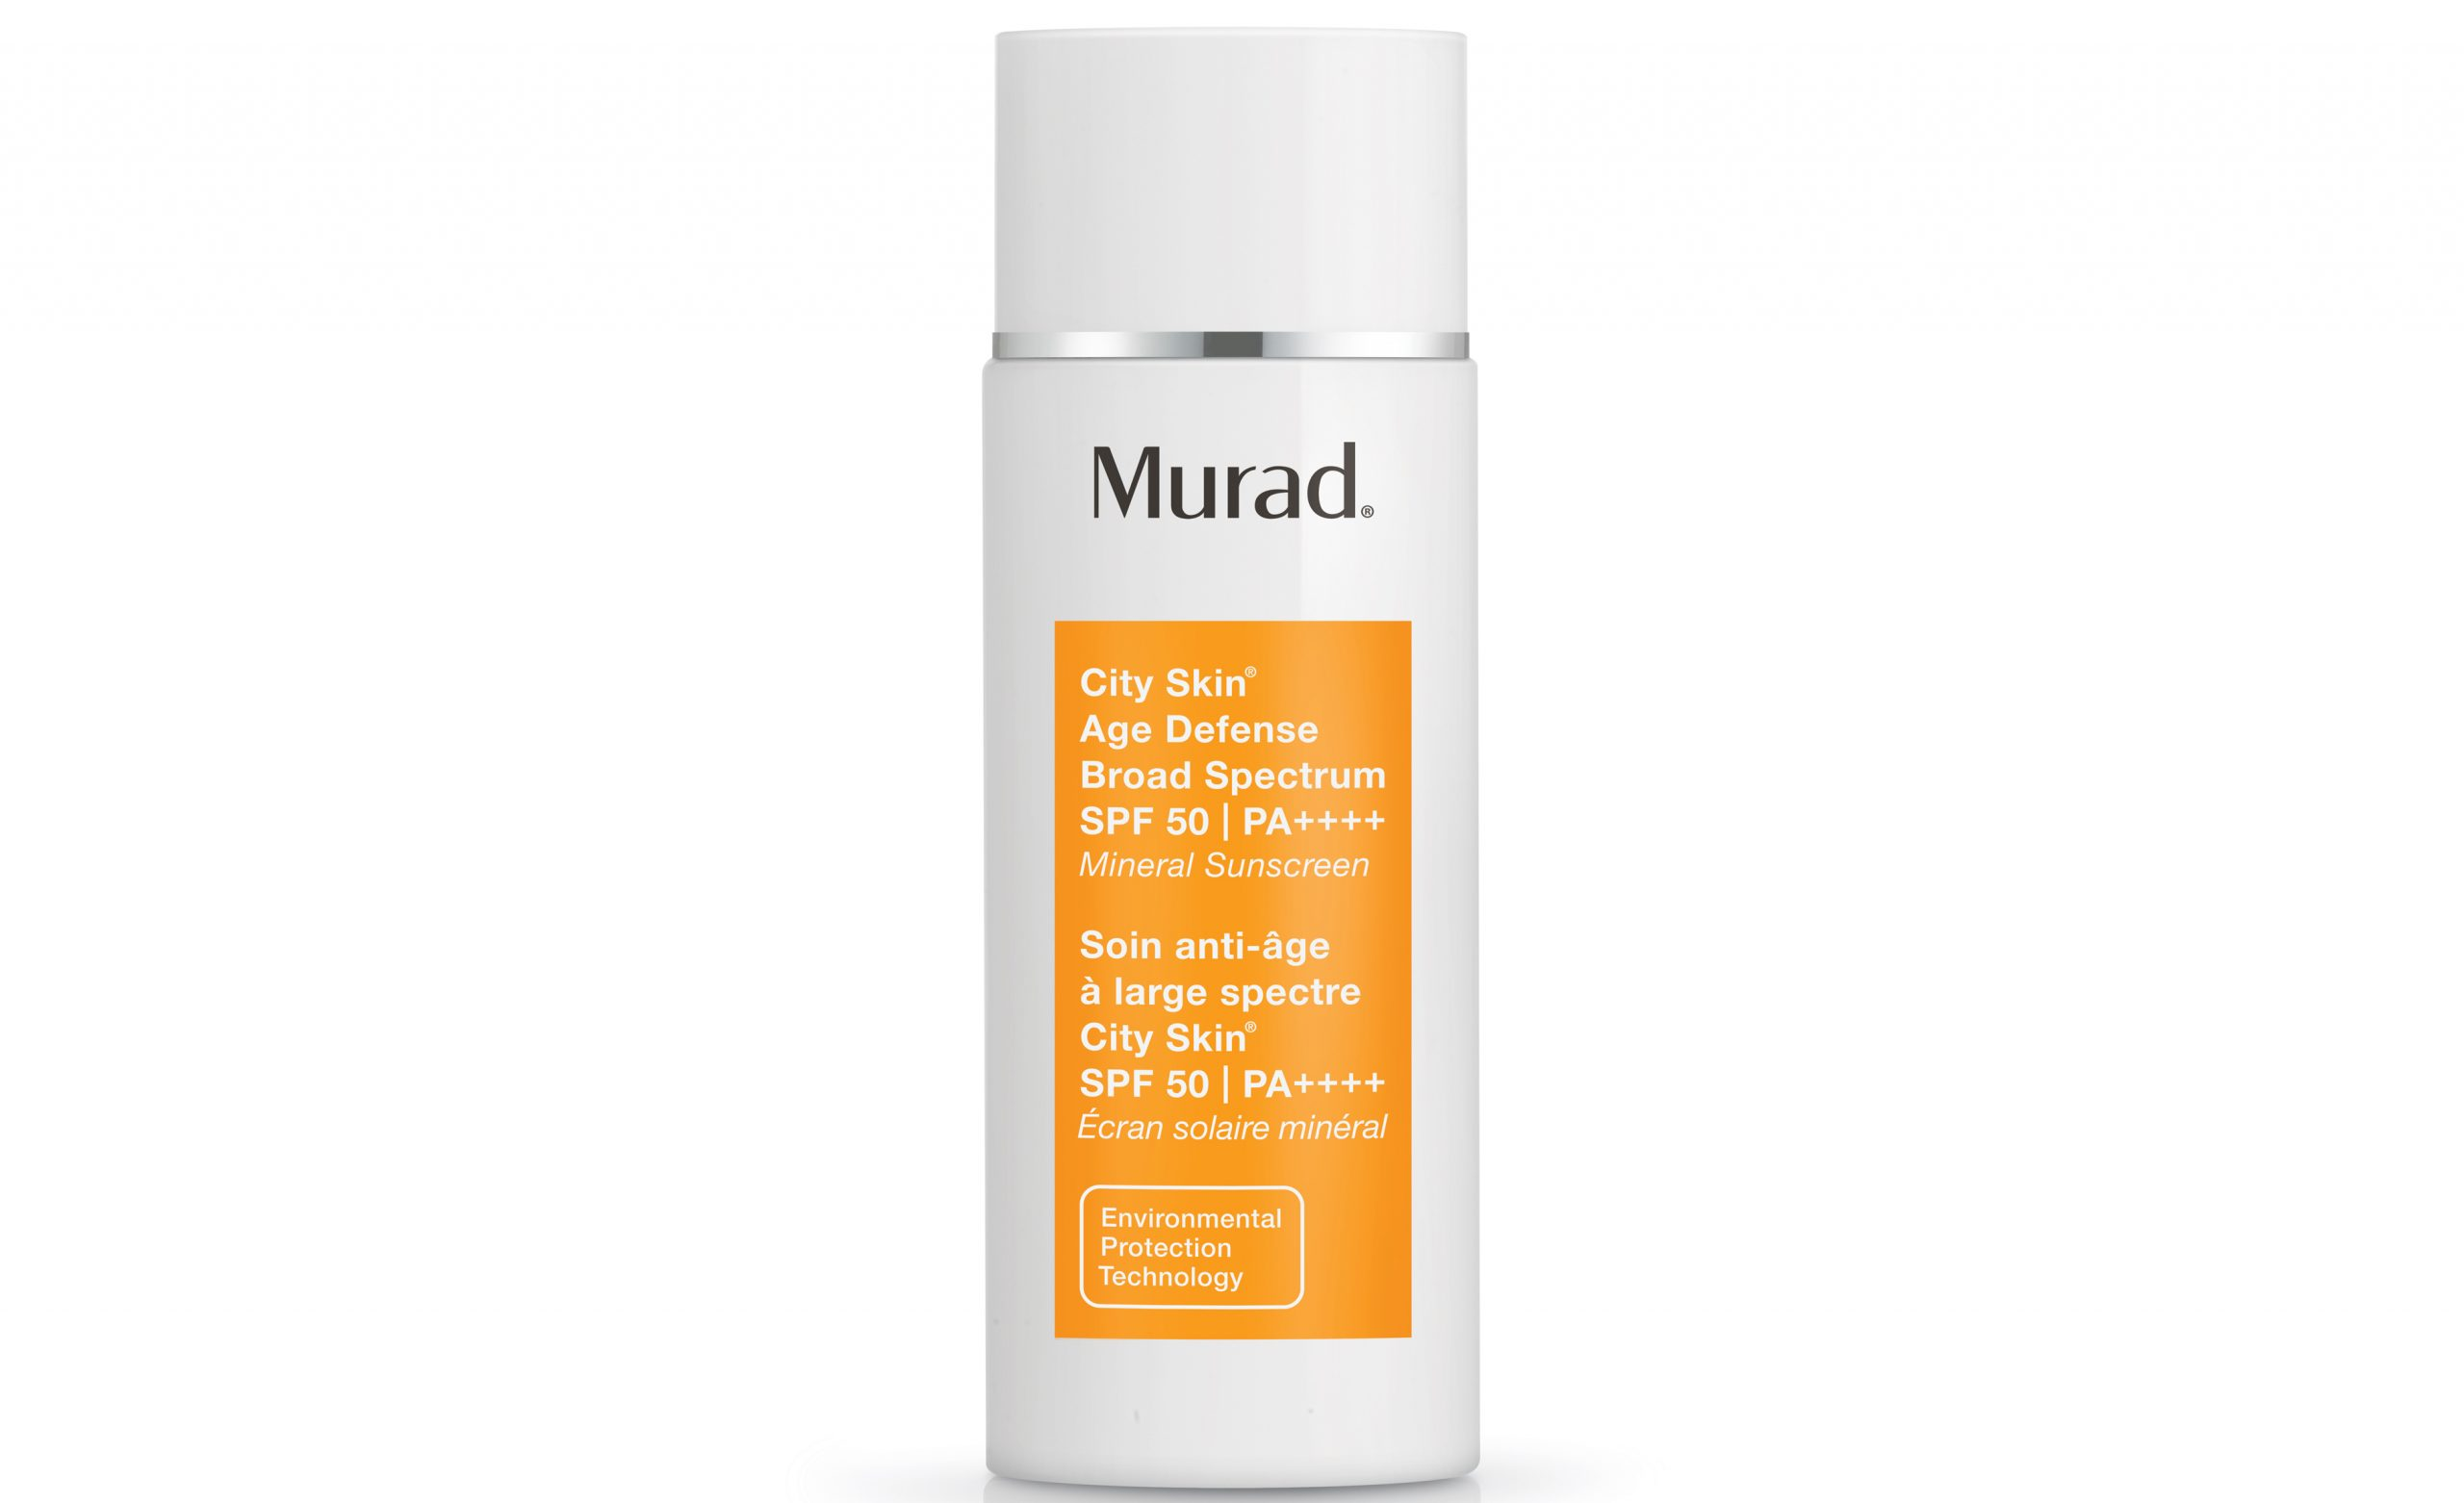 Everything you need to know about sunscreen on staycation, e55a59a2 a2ab 4ccd a21f b2cea862d3b5 scaled%, daily-dad, health%